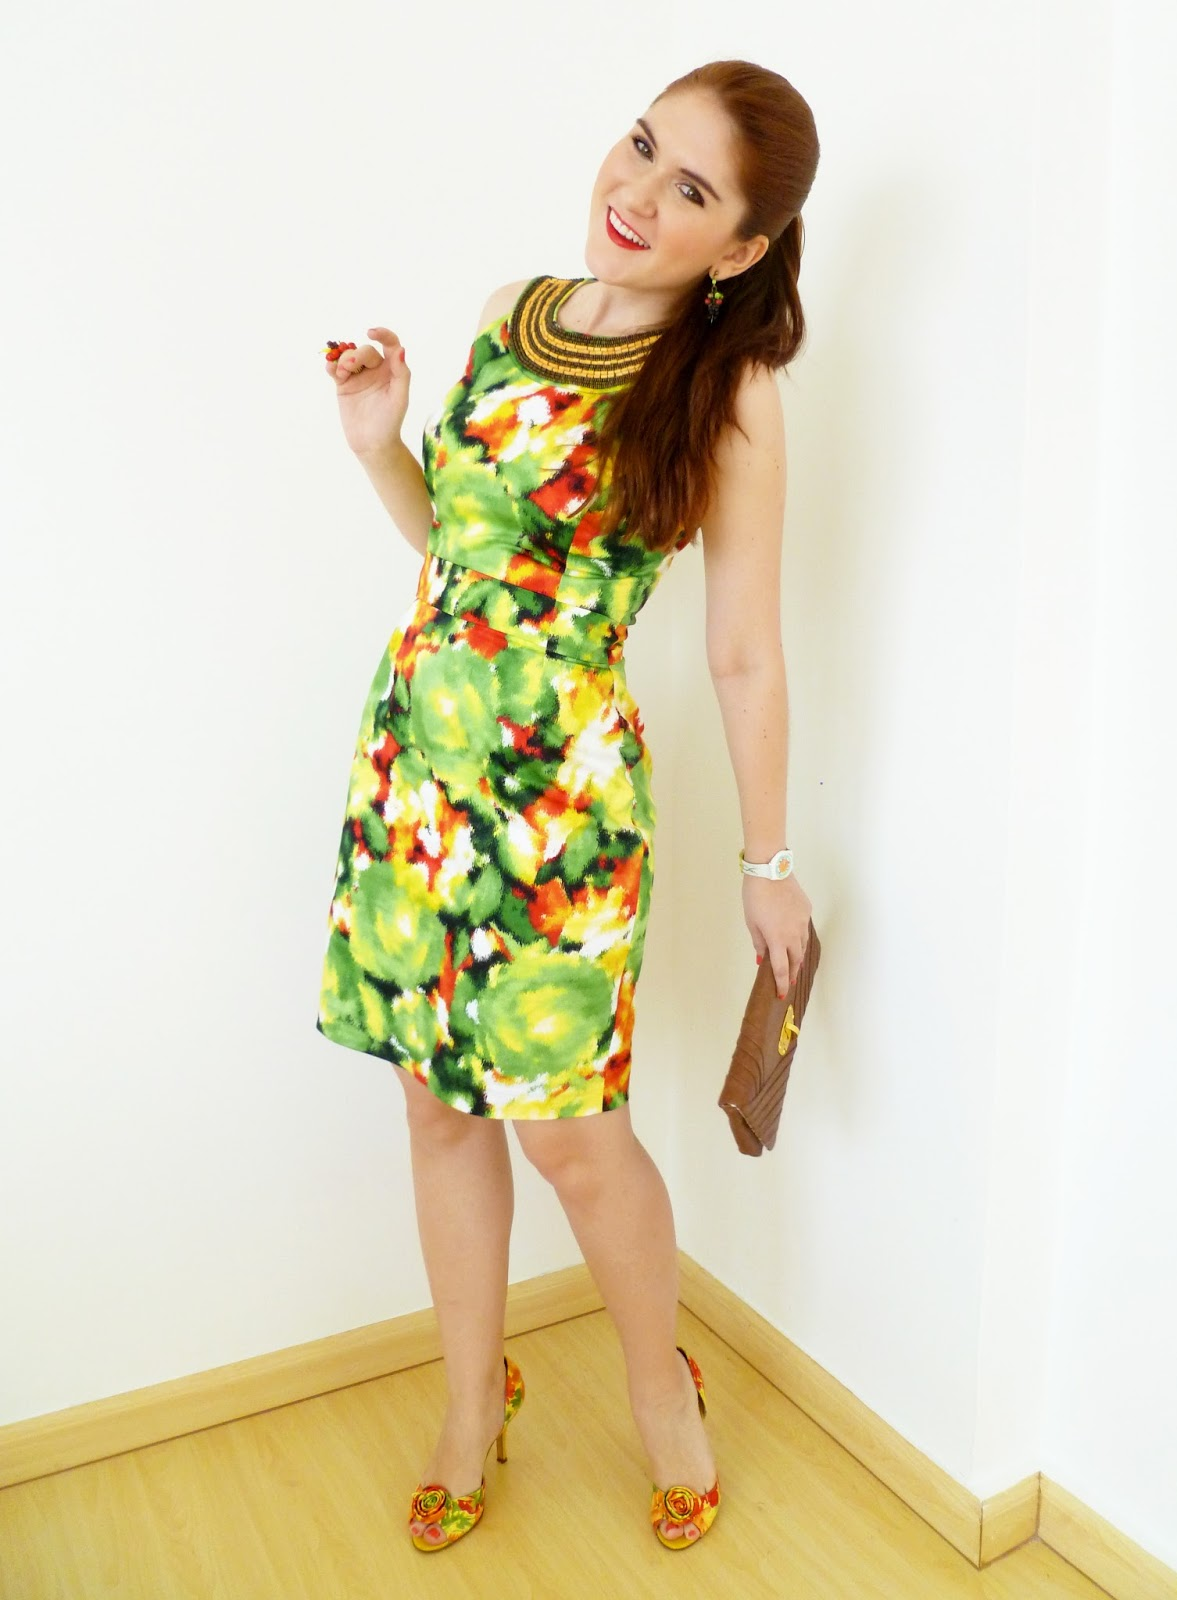 work outfit, colorful work outfit, chic work outfit, shift dress, professional outfit, office outfit, spring fashion,